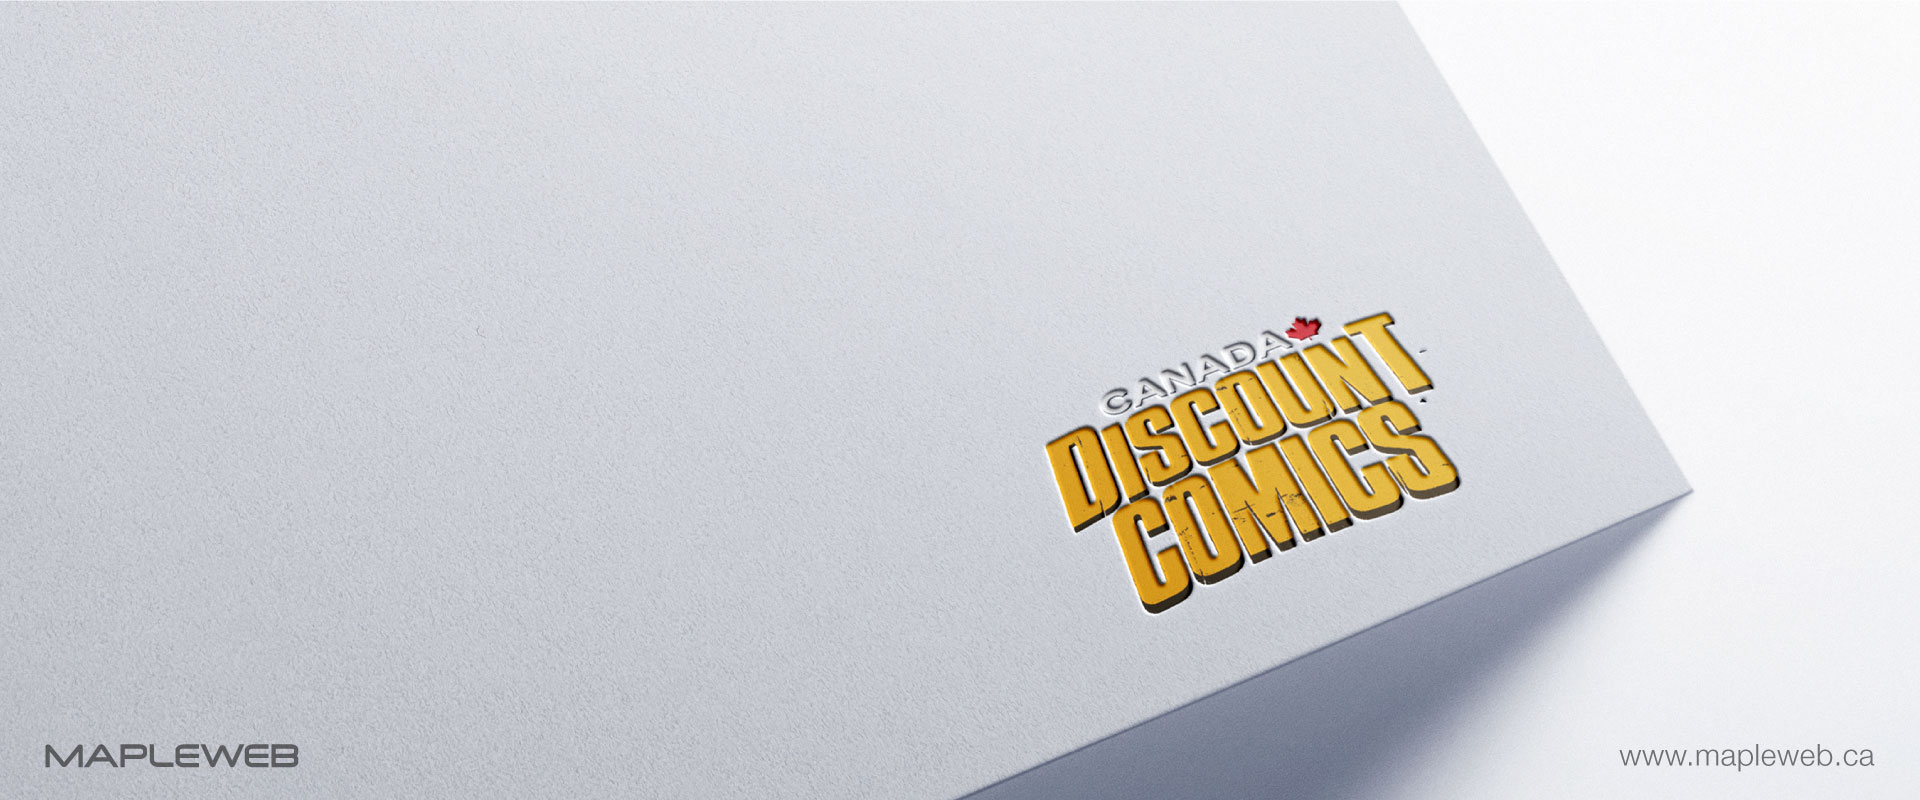 canada-discount-comic-brand-logo-design-by-mapleweb-vancouver-canada-white-paper-card-mock